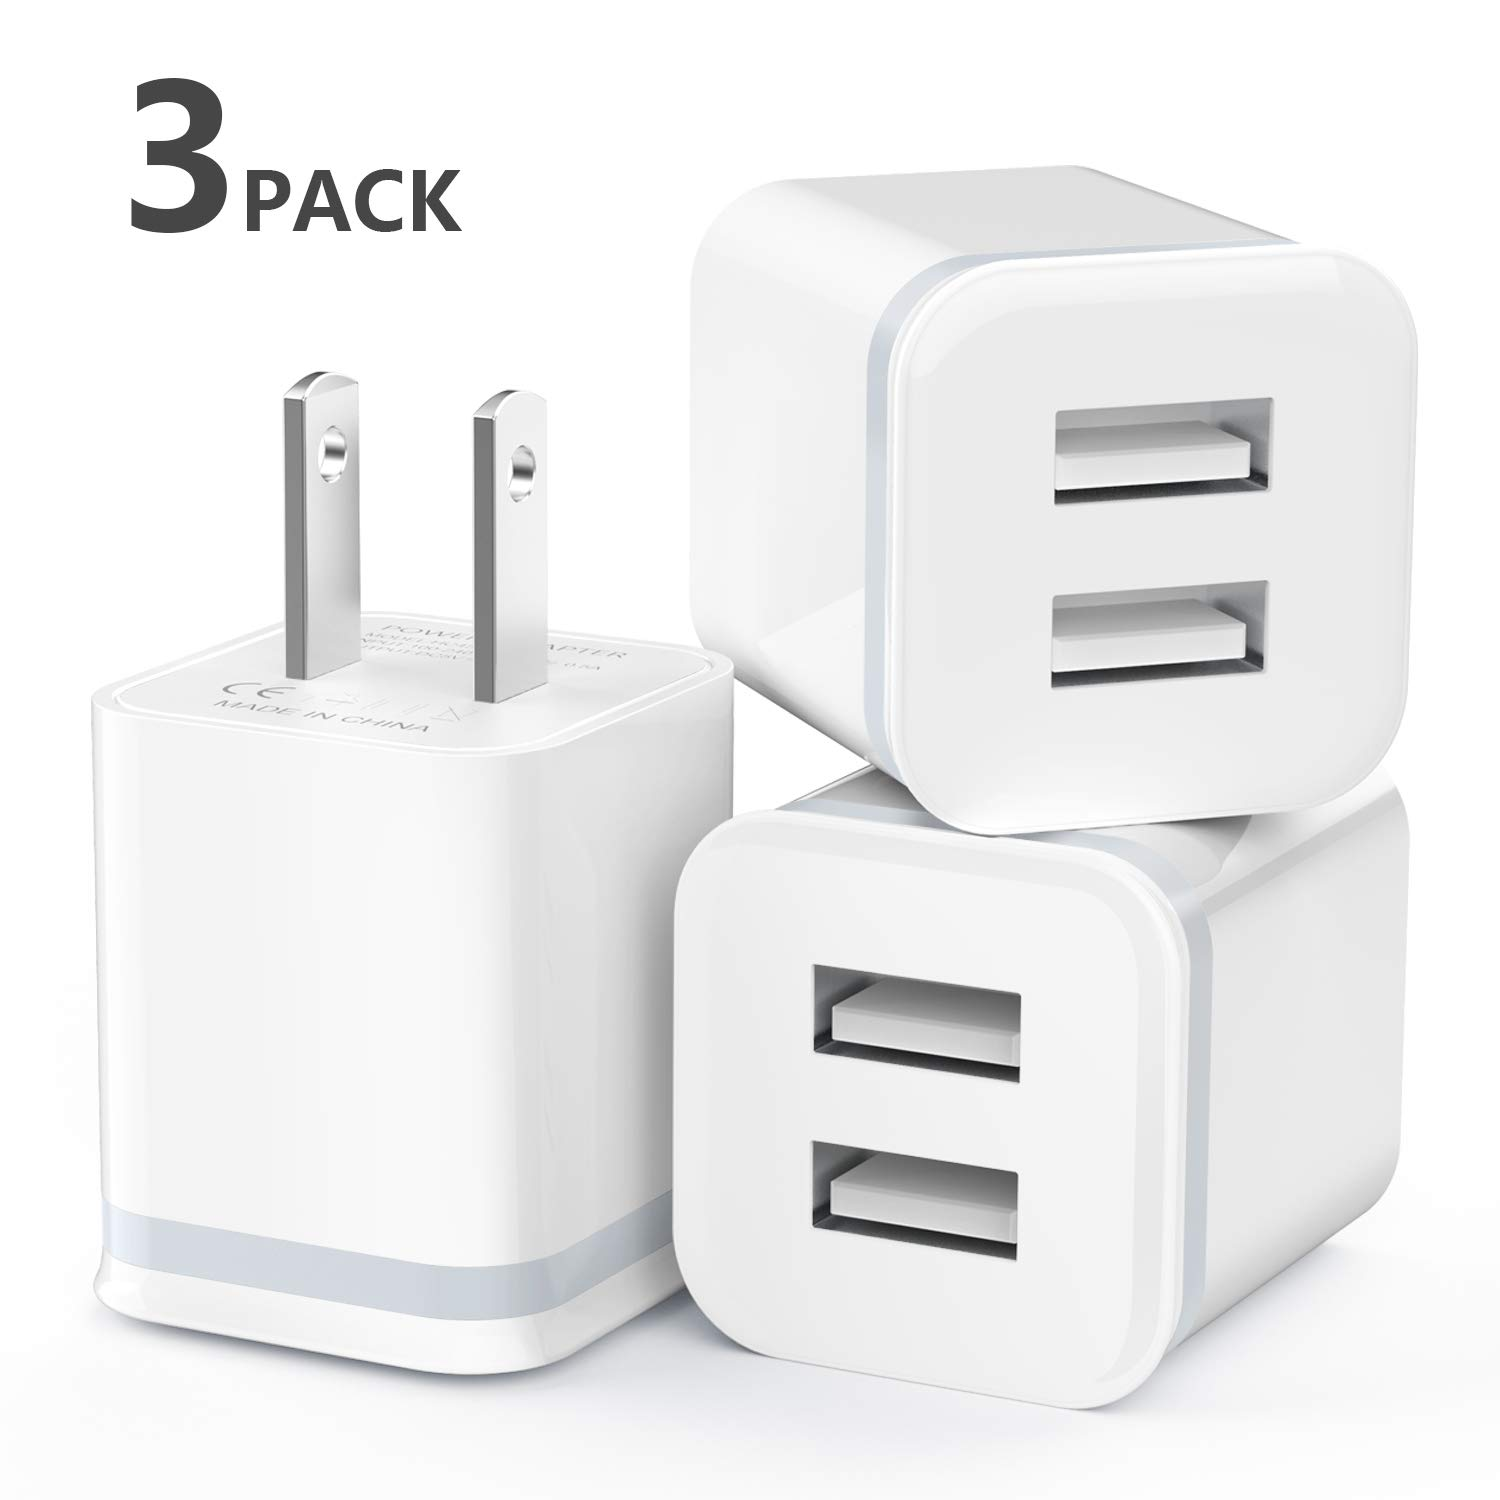 USB Wall Charger, LUOATIP 3-Pack 2.1A/5V Dual Port USB Cube Power Adapter Charger Plug Charging Block Replacement for iPhone Xs/XR/X, 8/7/6 Plus, Samsung, LG, HTC, Moto, Android Phones by LUOATIP